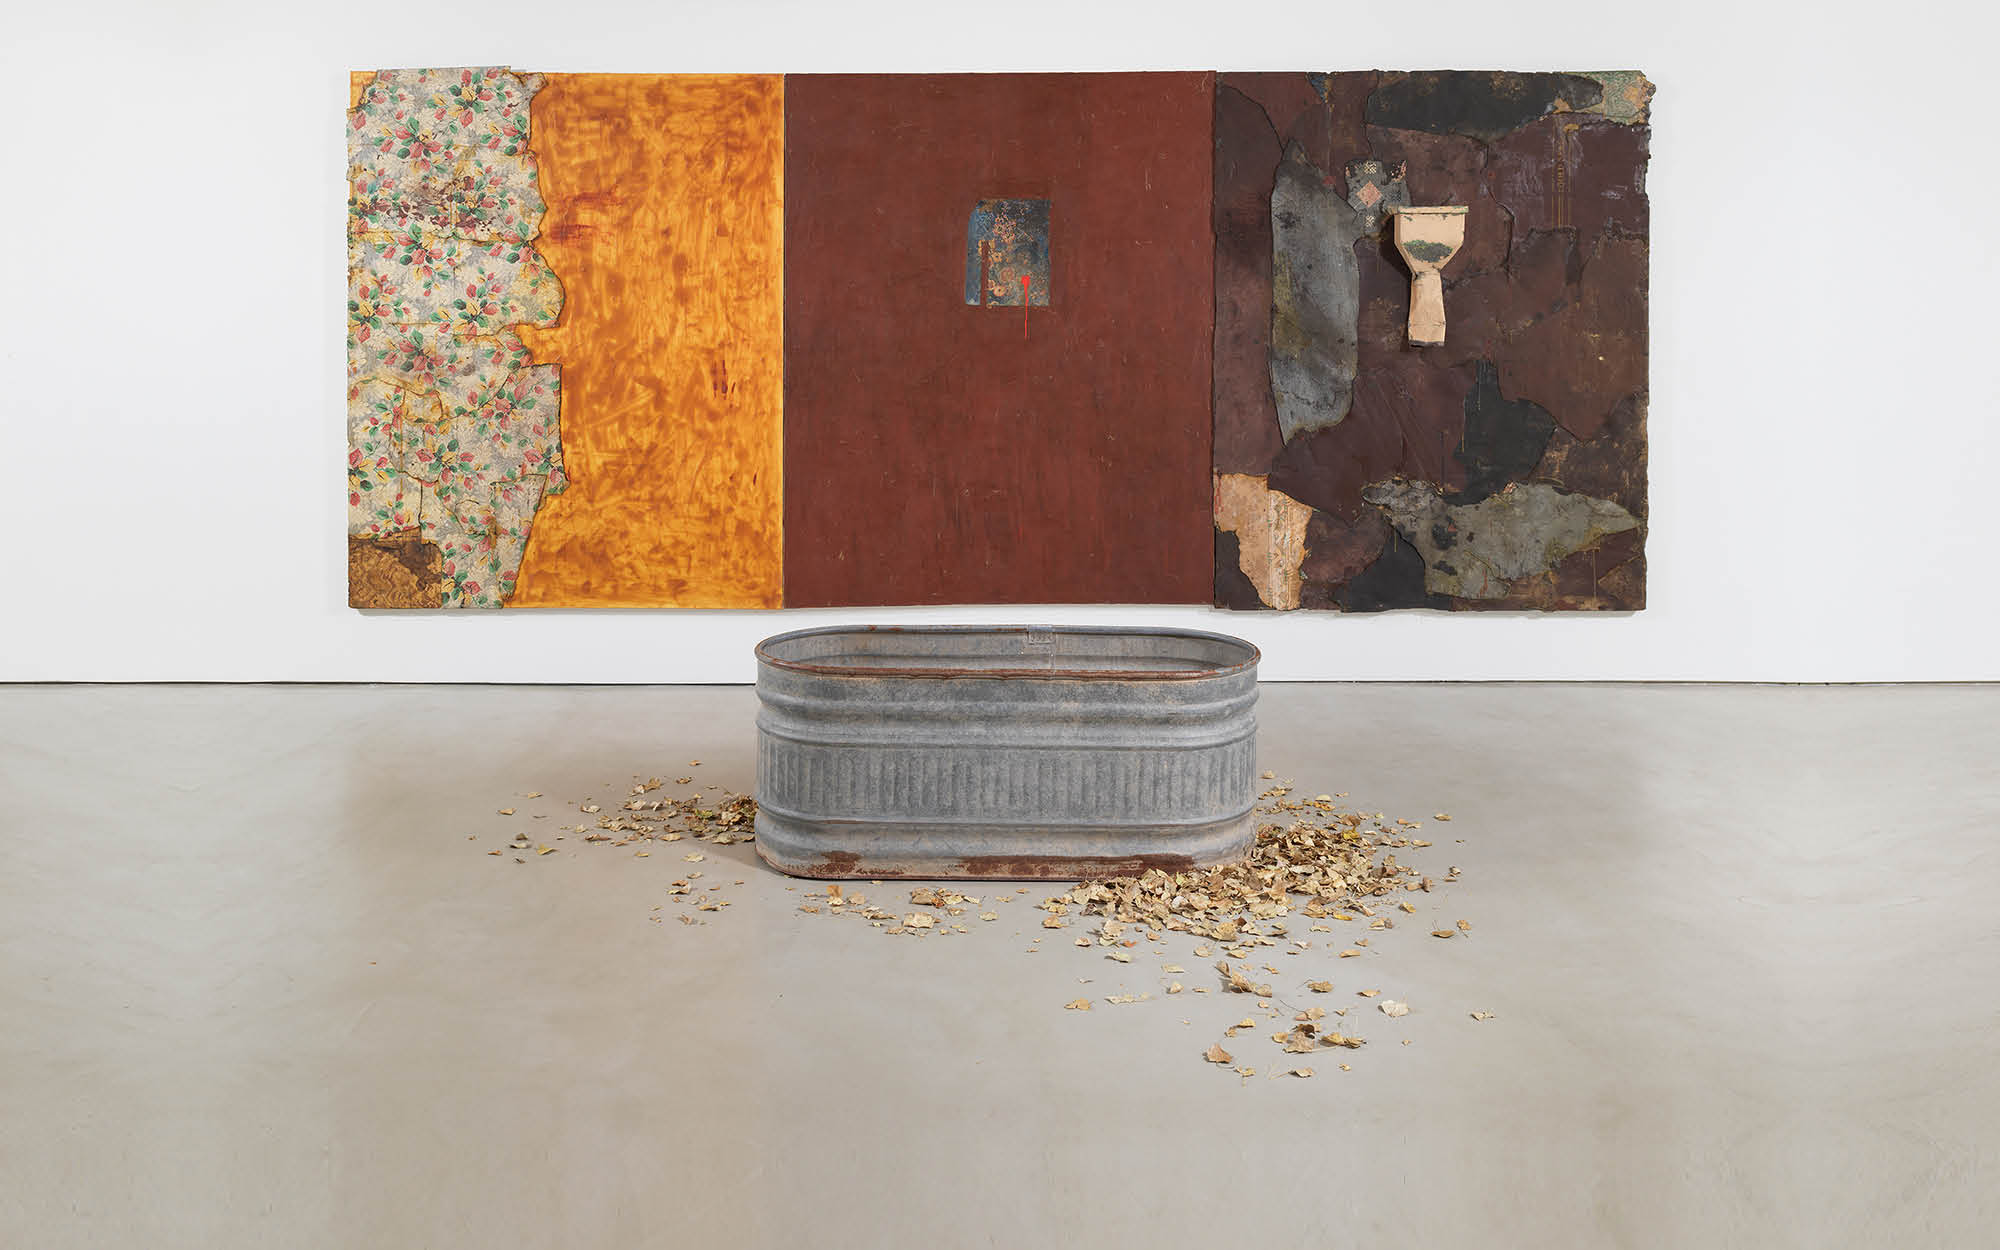 Harmony Hammond: Material Witness,Five Decades of Art exhibition, 28 March - 26 July